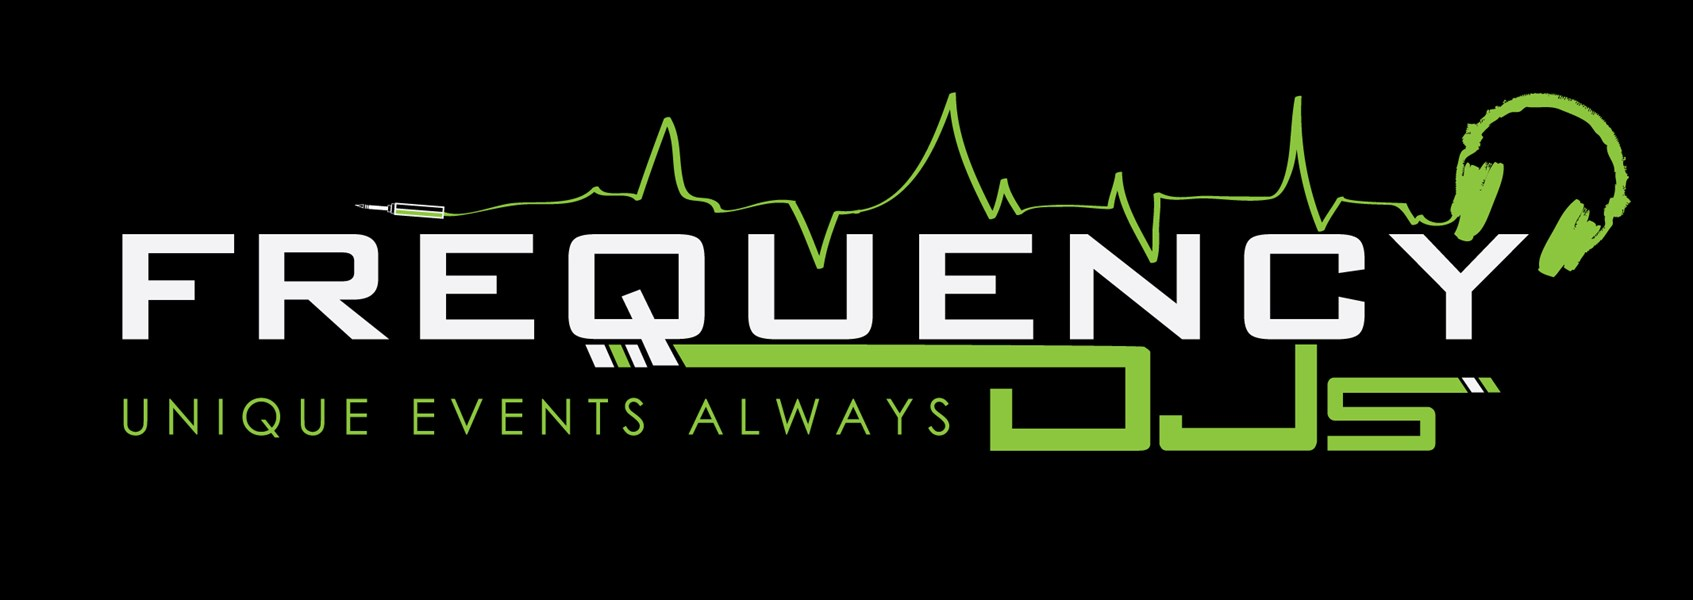 Frequencydjs - Mobile DJ - Burlington, WI